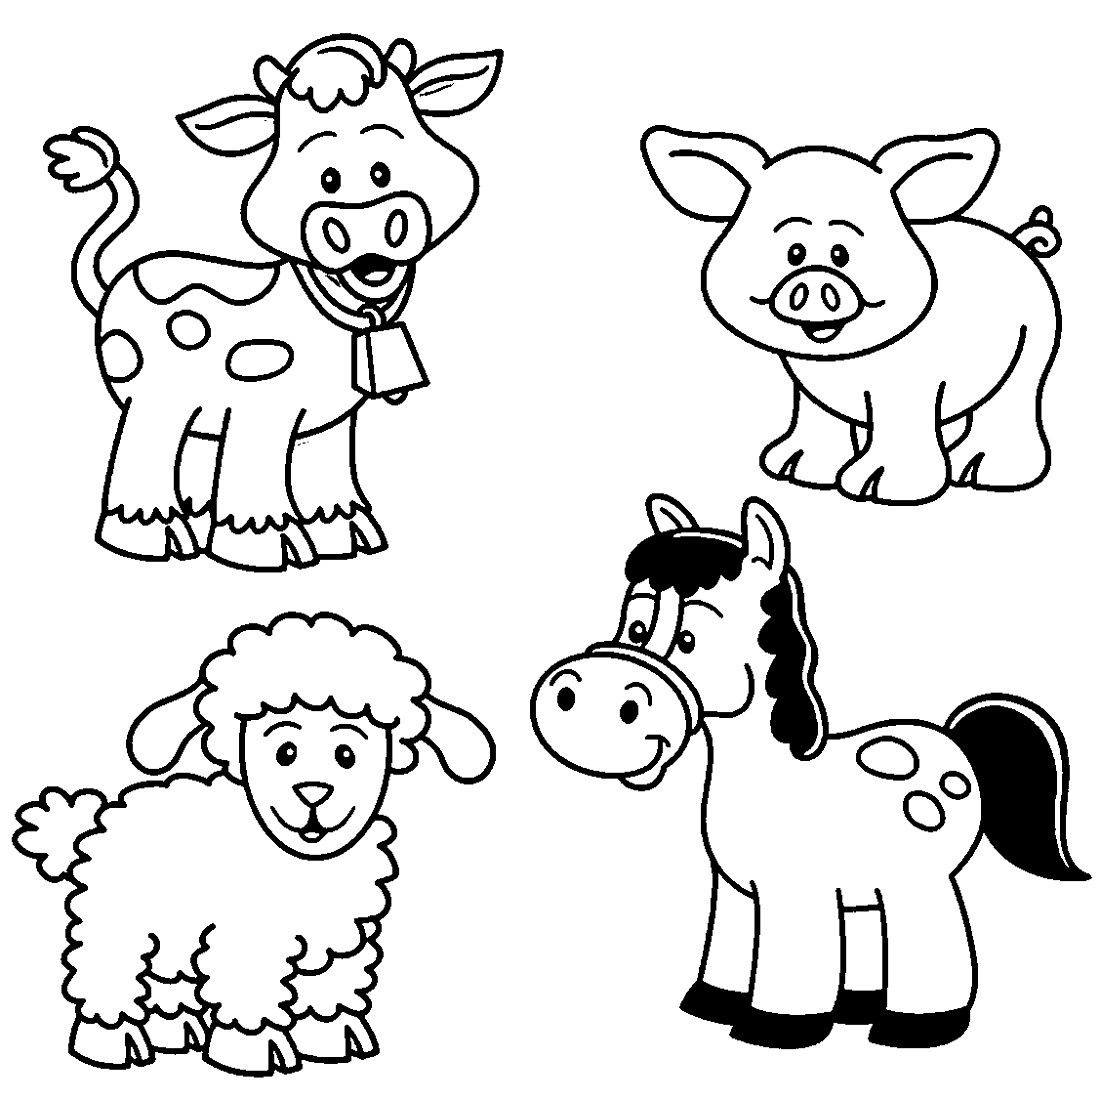 Printable Farm Animal Coloring For Kindergarten